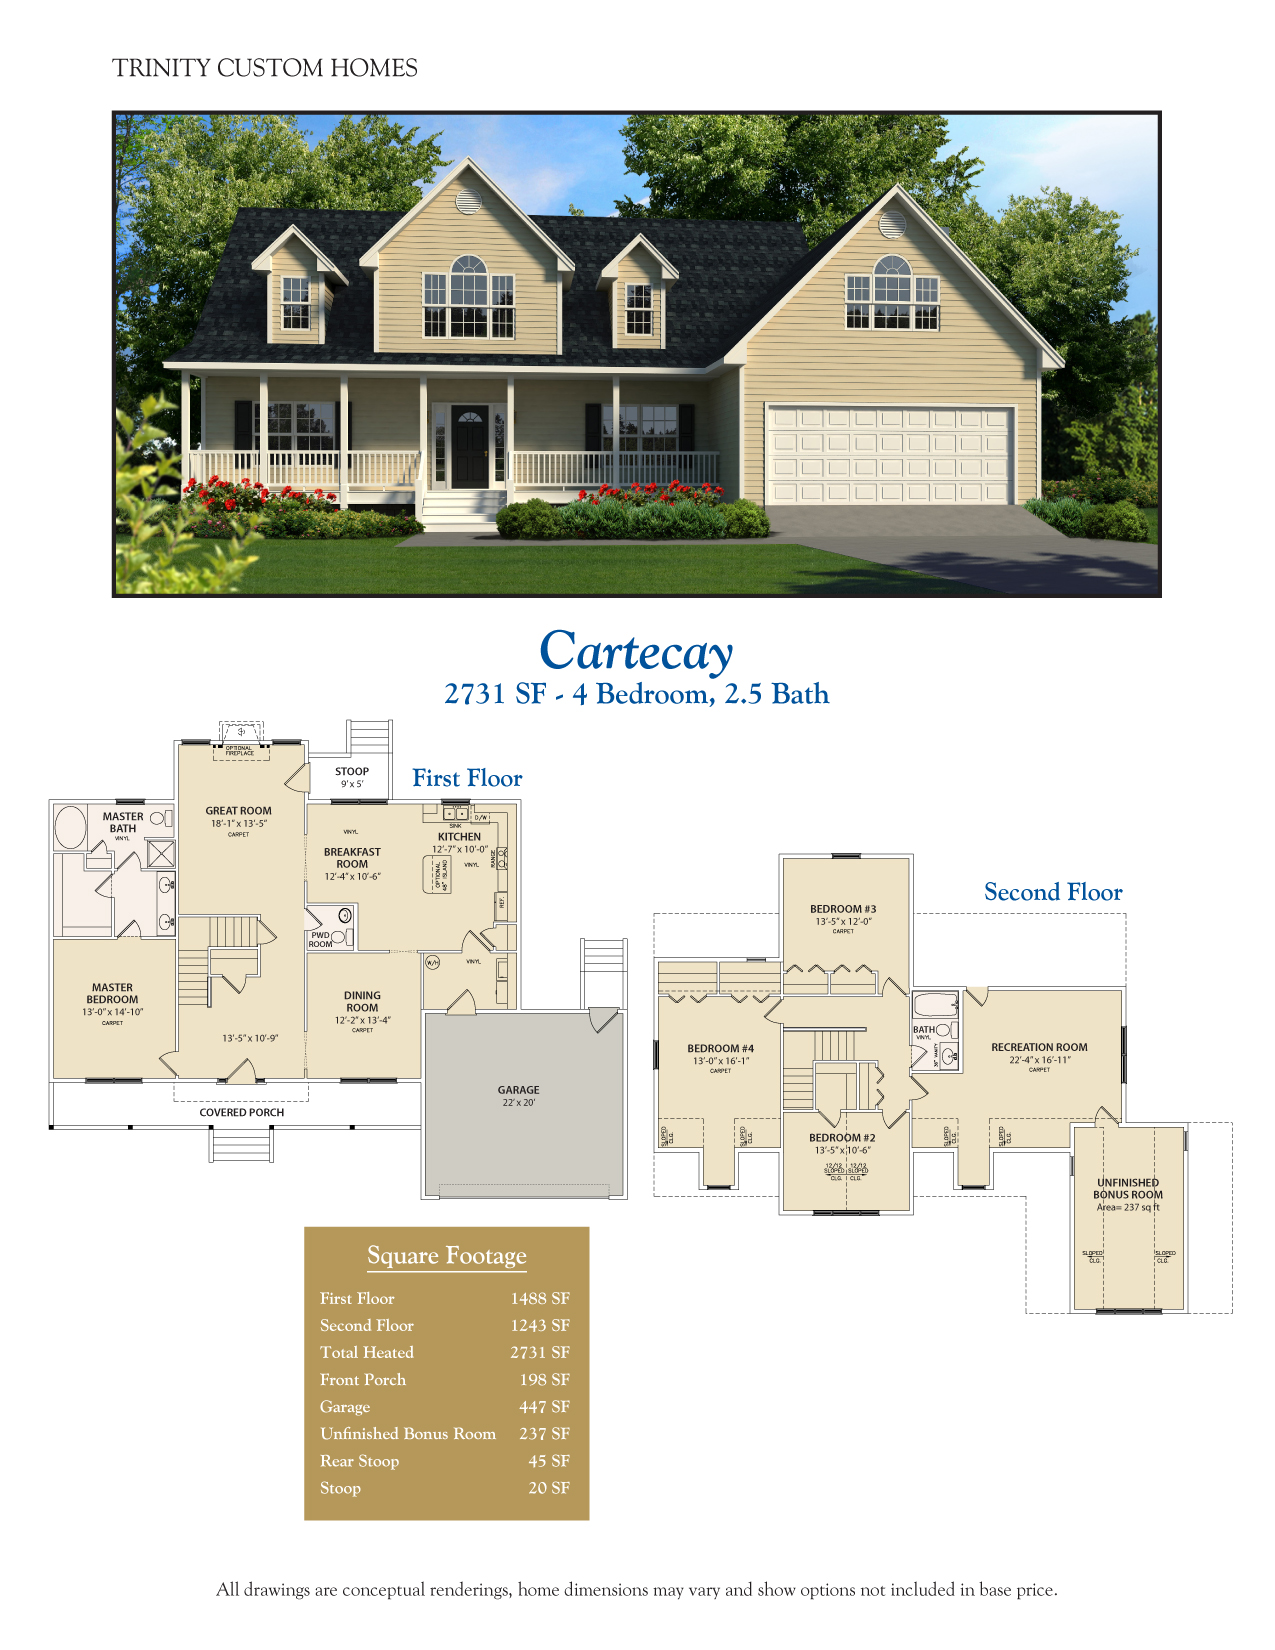 Cartecay welcome to trinity custom homes for Trinity home builders